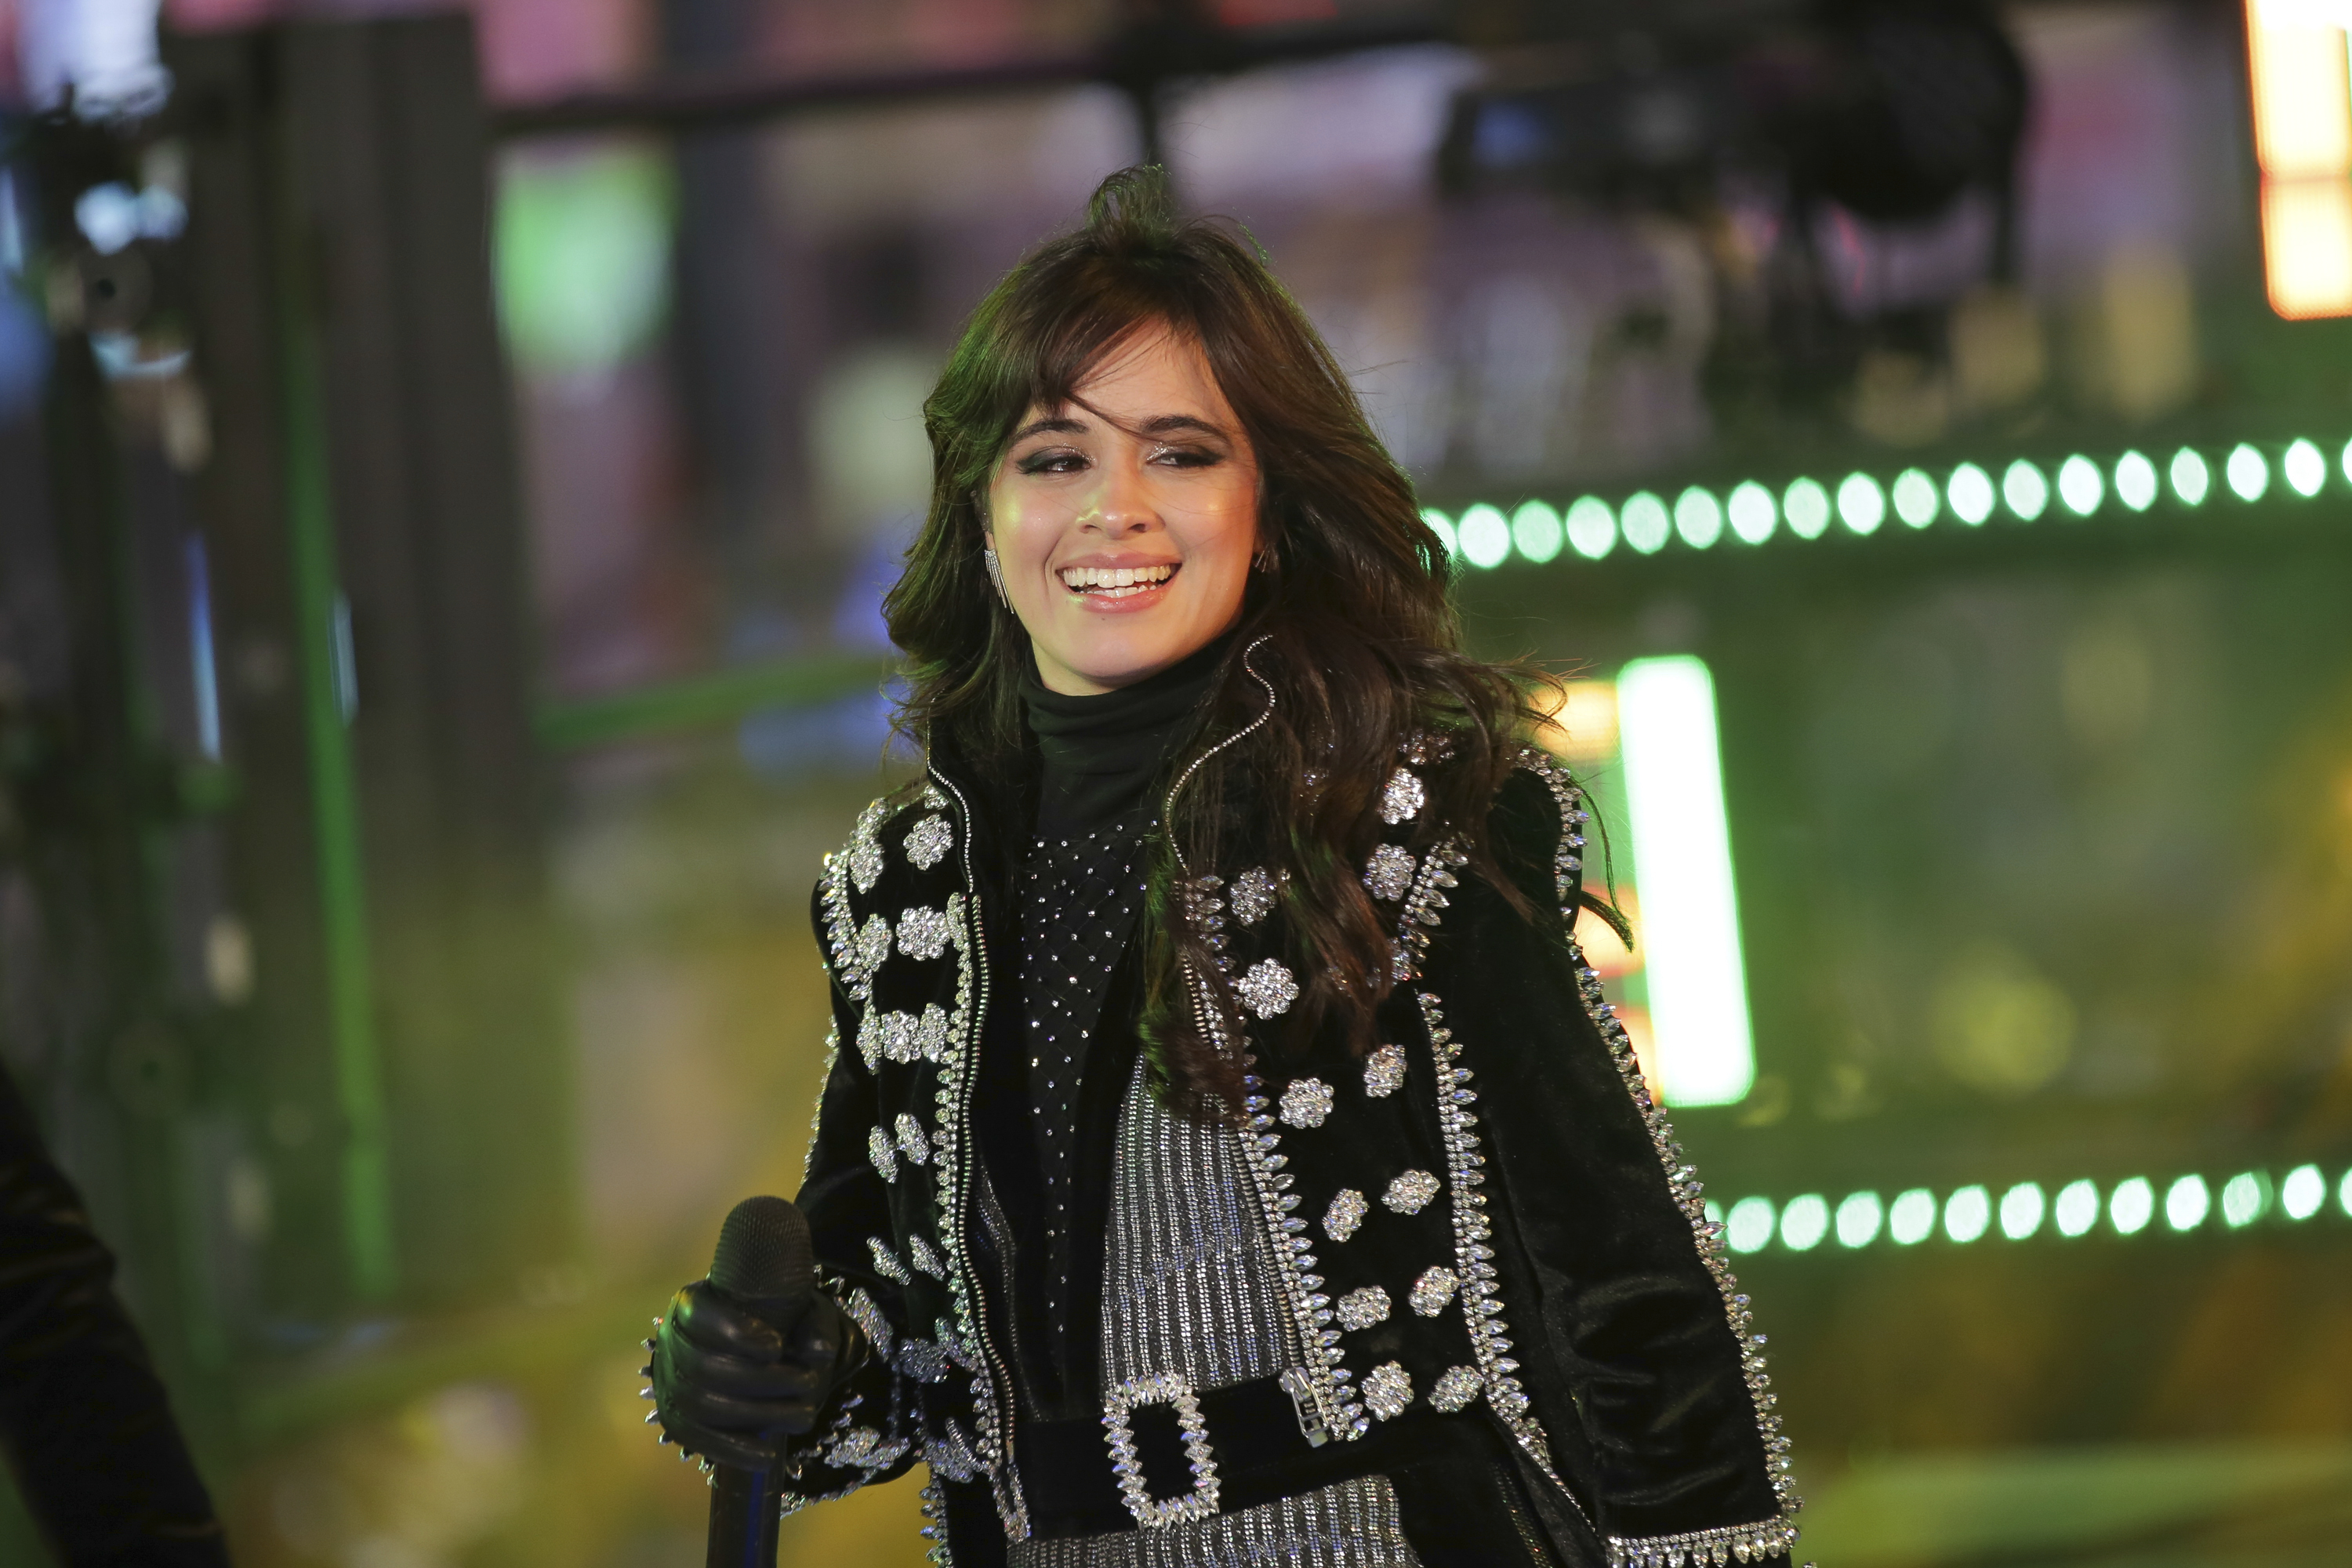 "<div class=""meta image-caption""><div class=""origin-logo origin-image ap""><span>AP</span></div><span class=""caption-text"">Camila Cabello performs on stage at the New Year's Eve celebration in Times Square on Sunday, Dec. 31, 2017, in New York. (Photo by Brent N. Clarke/Invision/AP) (Brent N. Clarke/Invision/AP)</span></div>"